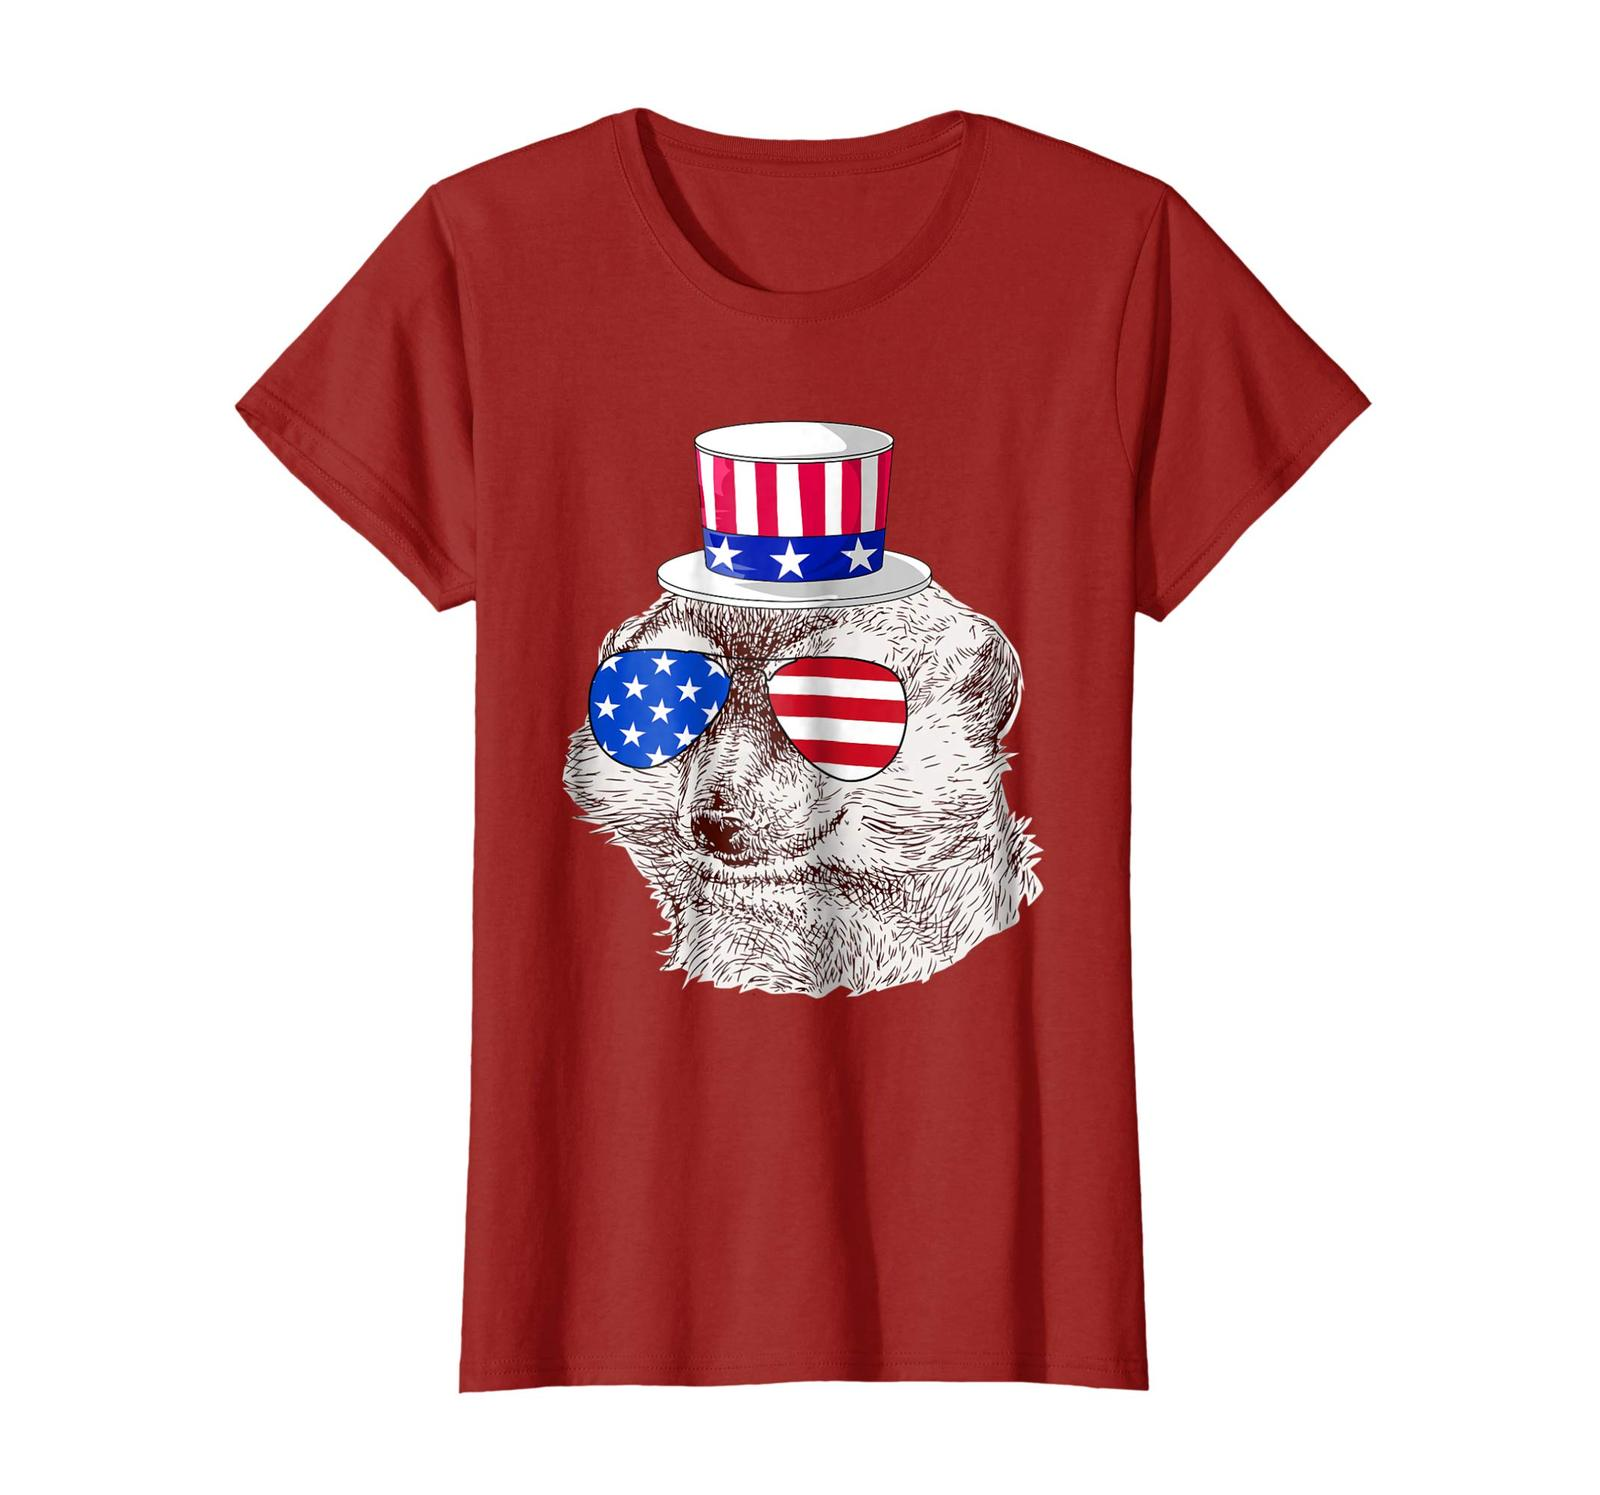 Primary image for New Shirts - Vintage Patriot Mongoose Tshirt 4th of July American Flag Wowen